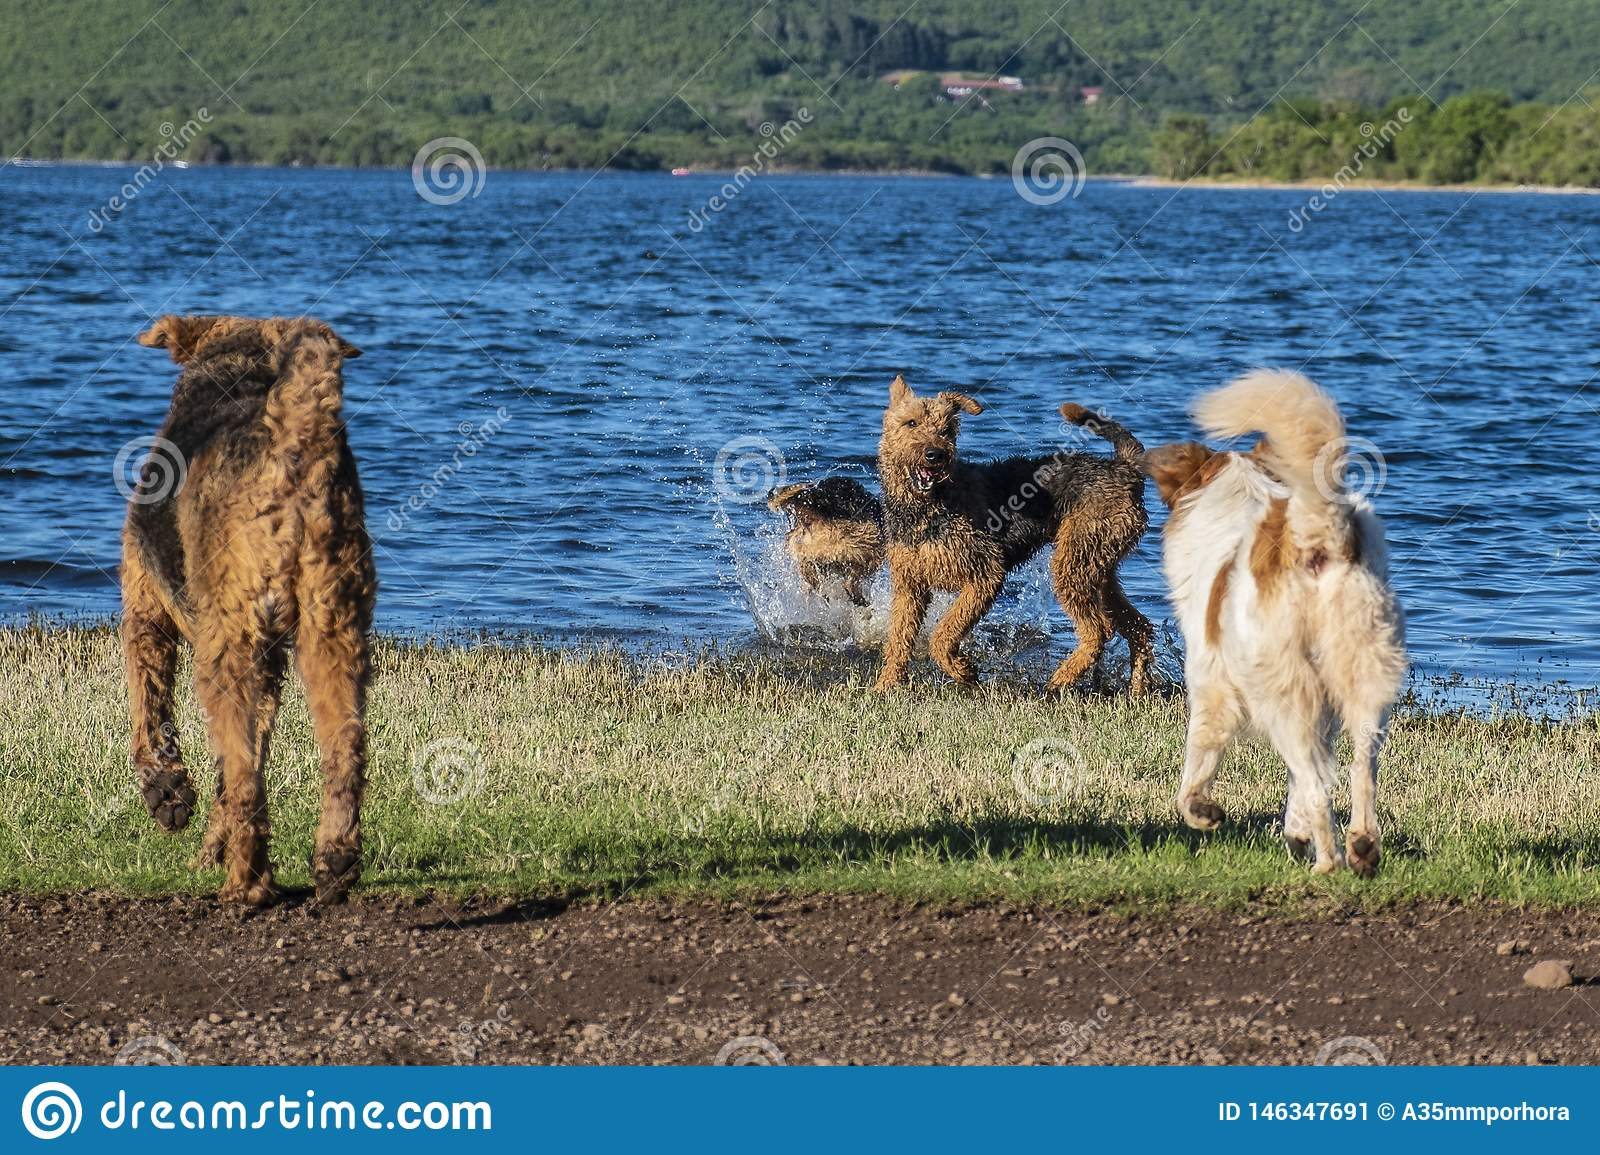 Many dogs playing on the shore of a lake